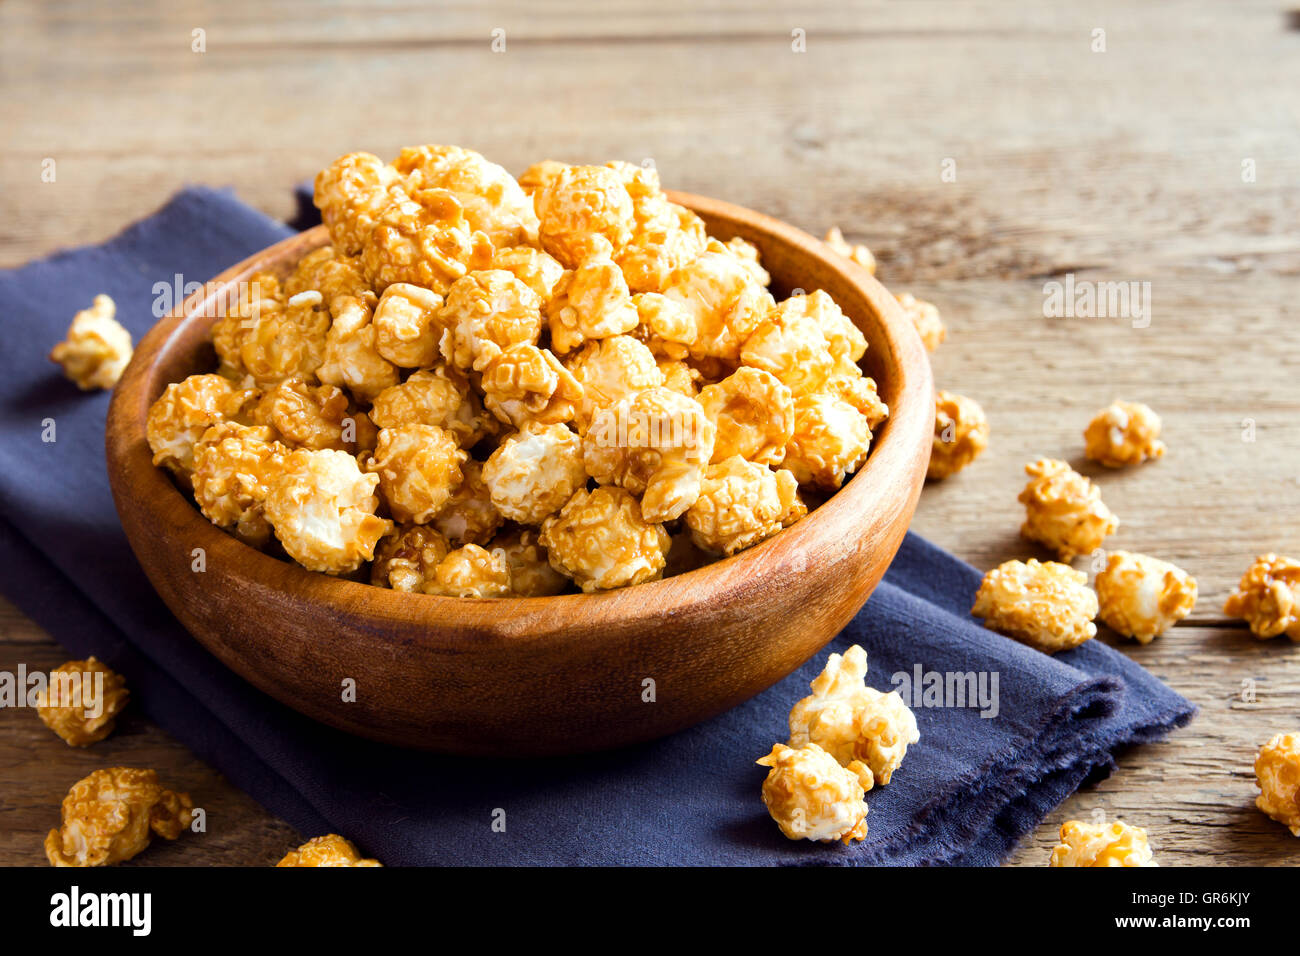 Homemade caramel popcorn in wooden bowl - Stock Image